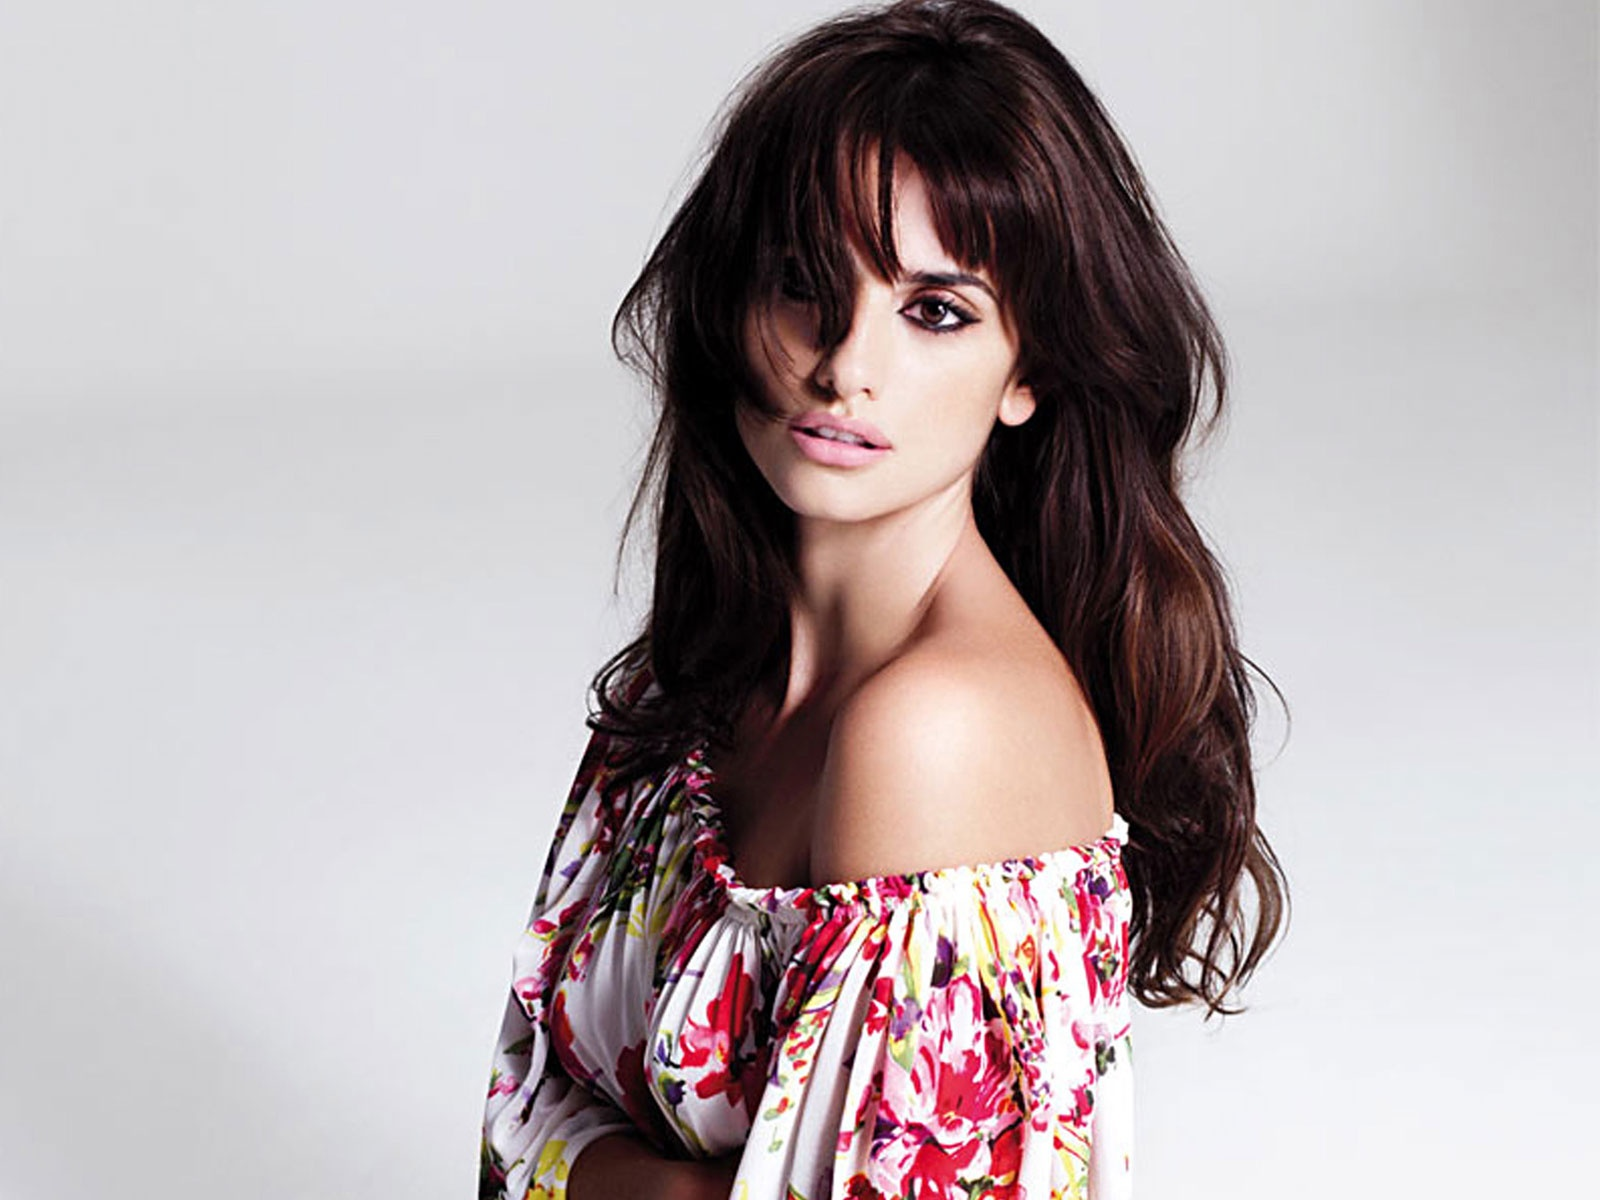 penelope cruz wallpapers hd A6